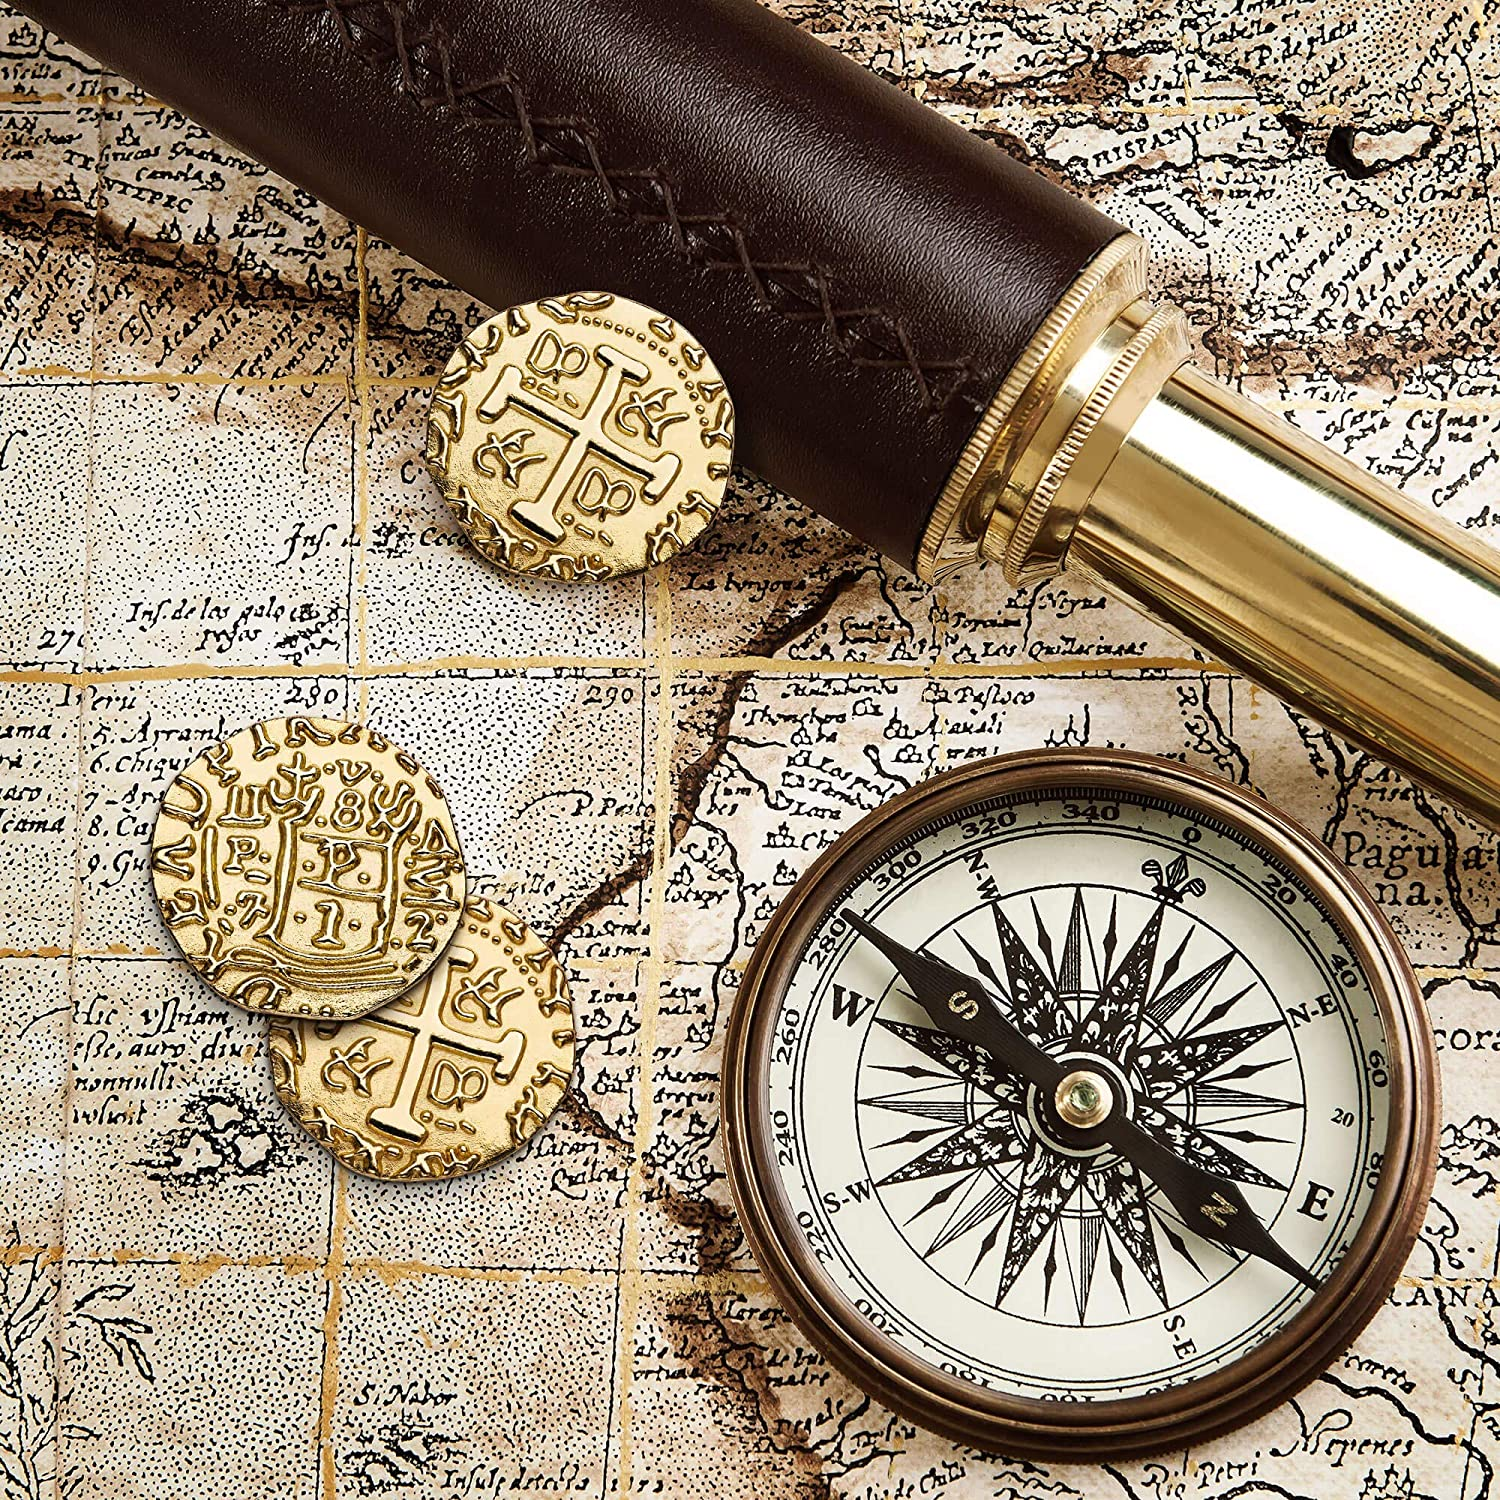 Metal Replica Spanish Doubloons for Board Games 100 Large Gold Treasure Coin Set Tokens Diameter: 1.18 Realistic Money Imitation Cosplay Metal Pirate Coins Toys Pirate Treasure Chest